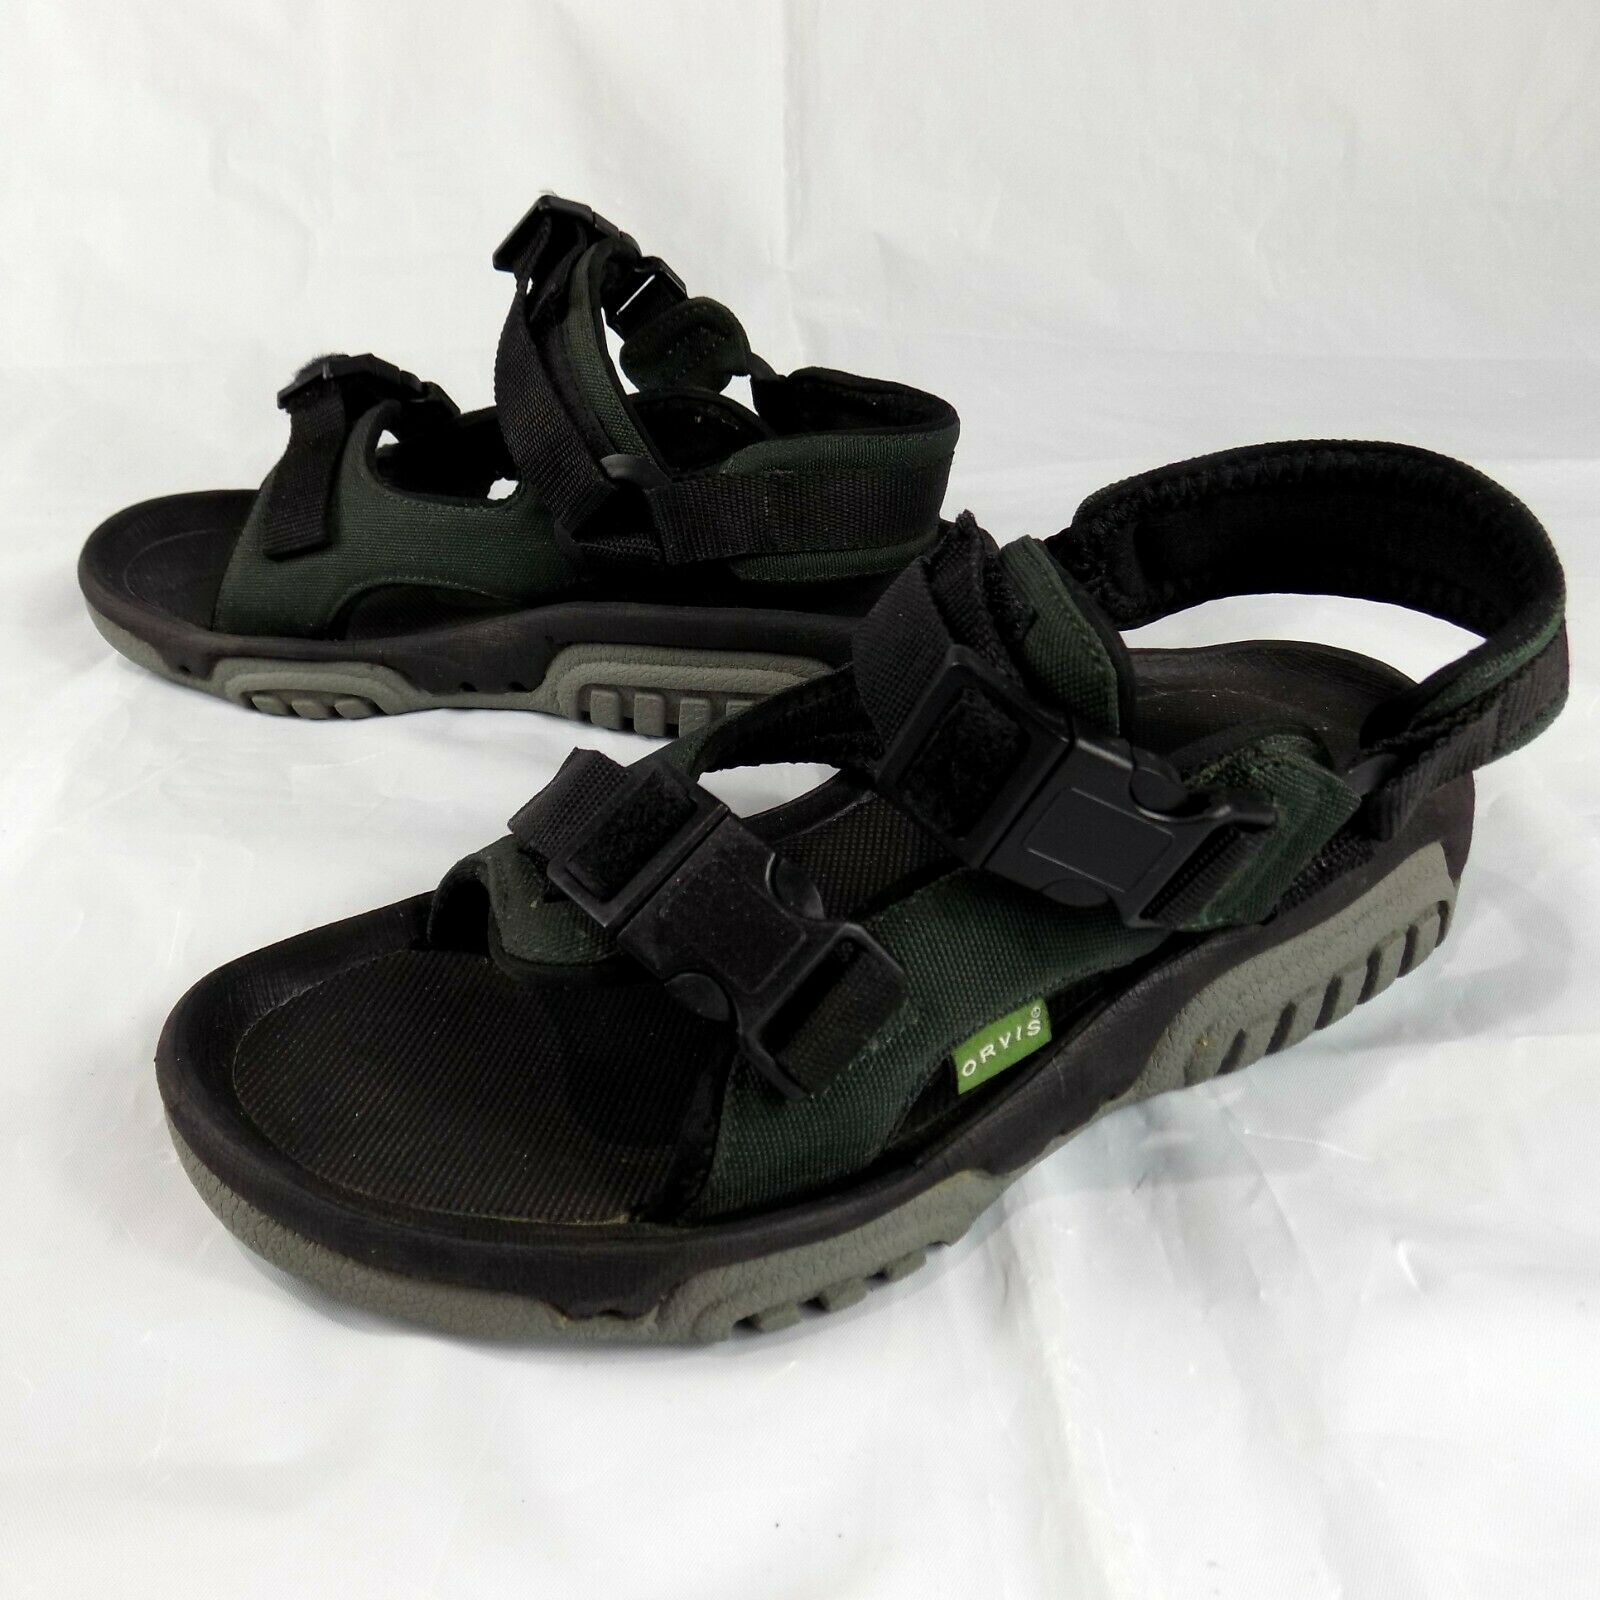 Orvis Classic Water shoes Sports Sandals  Wading Fishing Walking Hiking Mens 8  a lot of surprises